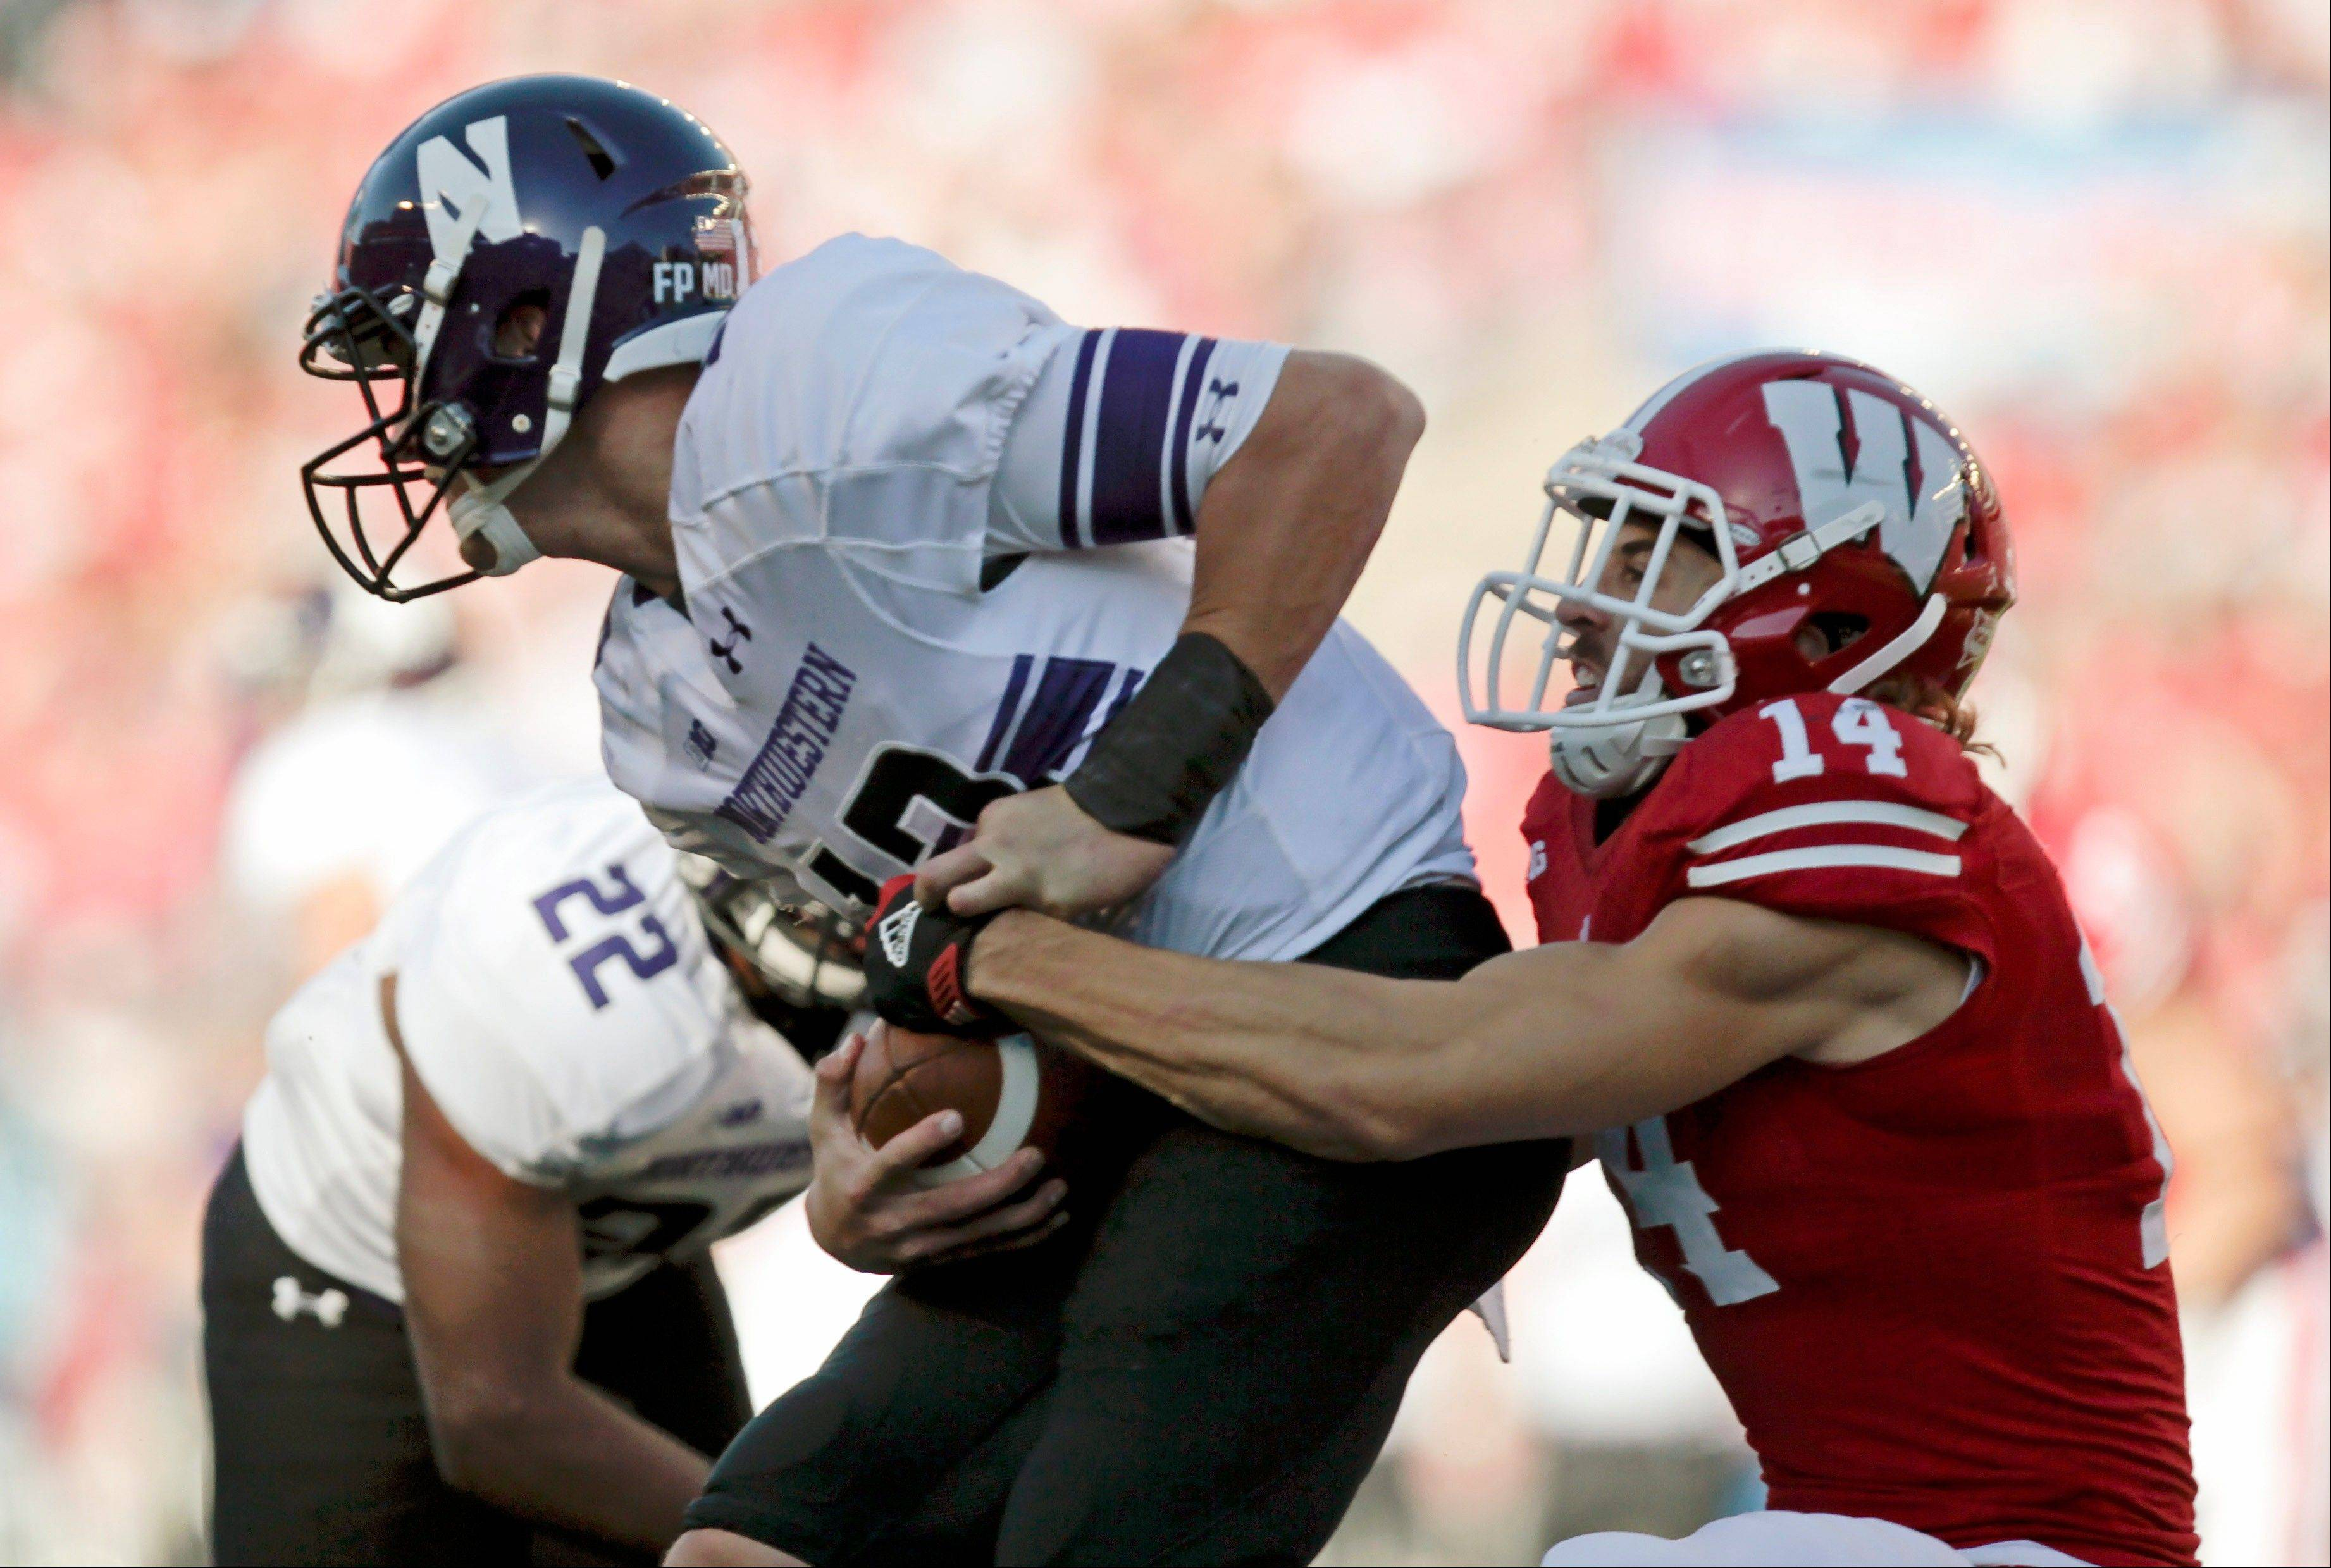 Wisconsin safety Nate Hammon sacks Northwestern quarterback Trevor Siemian on Saturday in Madison, Wis. The Badgers won 35-6.